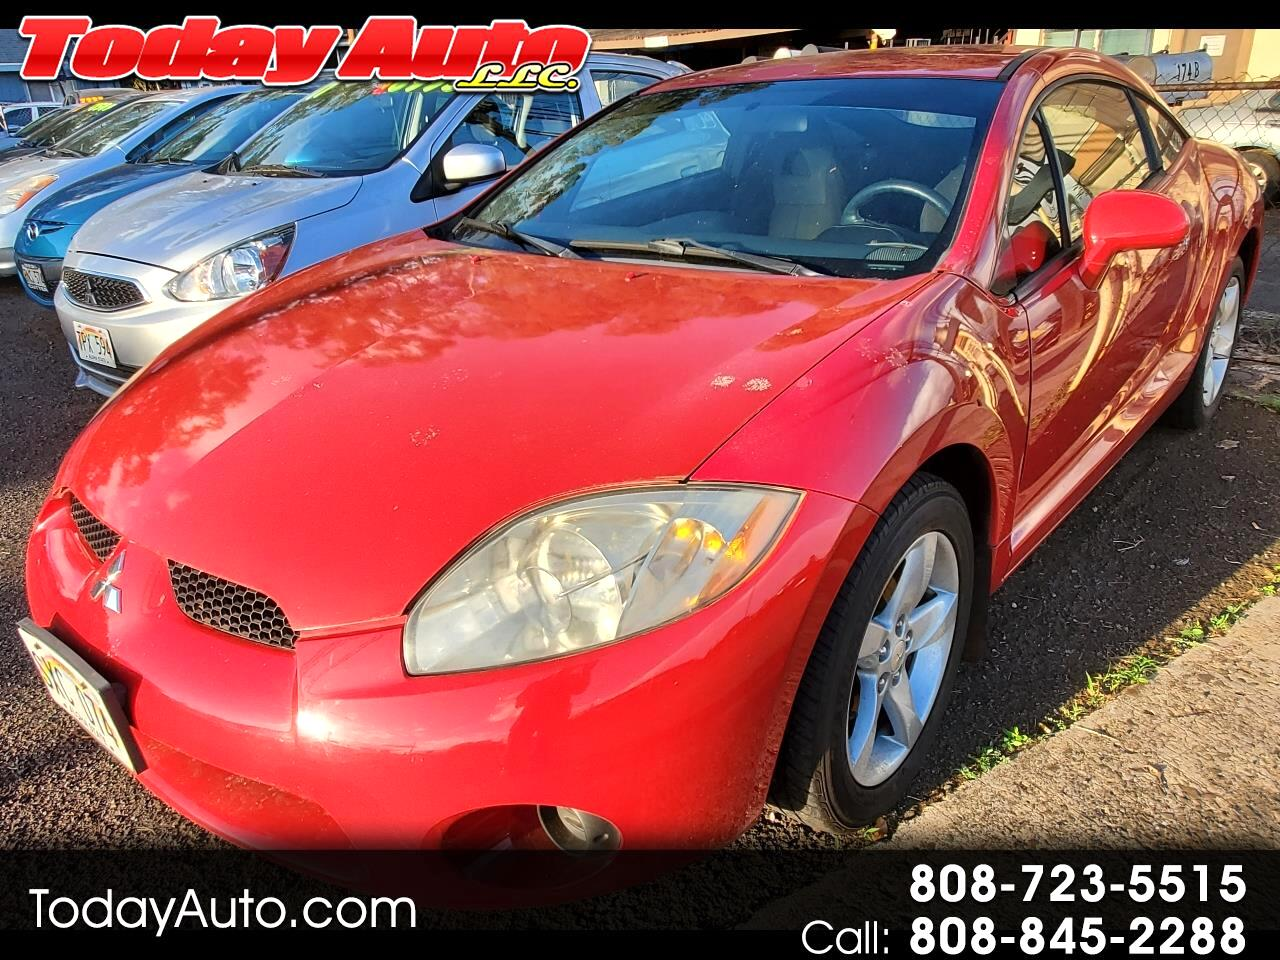 Mitsubishi Eclipse 3dr Cpe Manual GS 2007